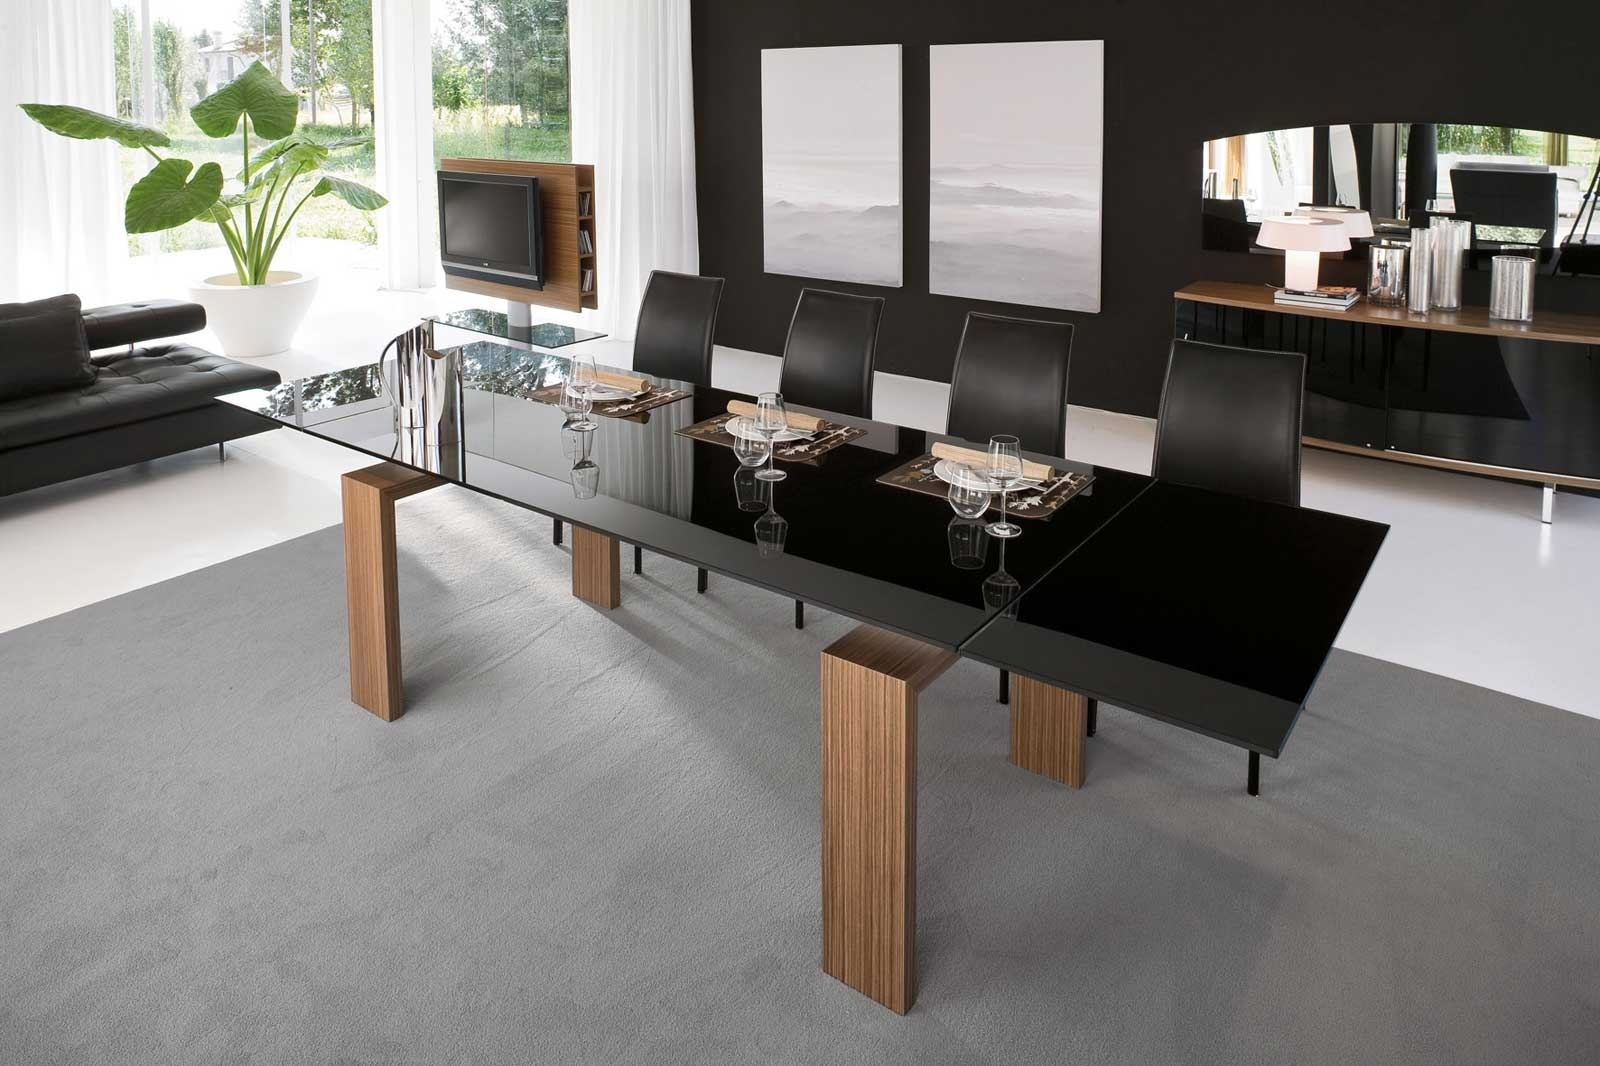 2017 Stylish Contemporary Dining Table Ideas Showing Simple Designs With Regard To Sleek Dining Tables (View 9 of 25)